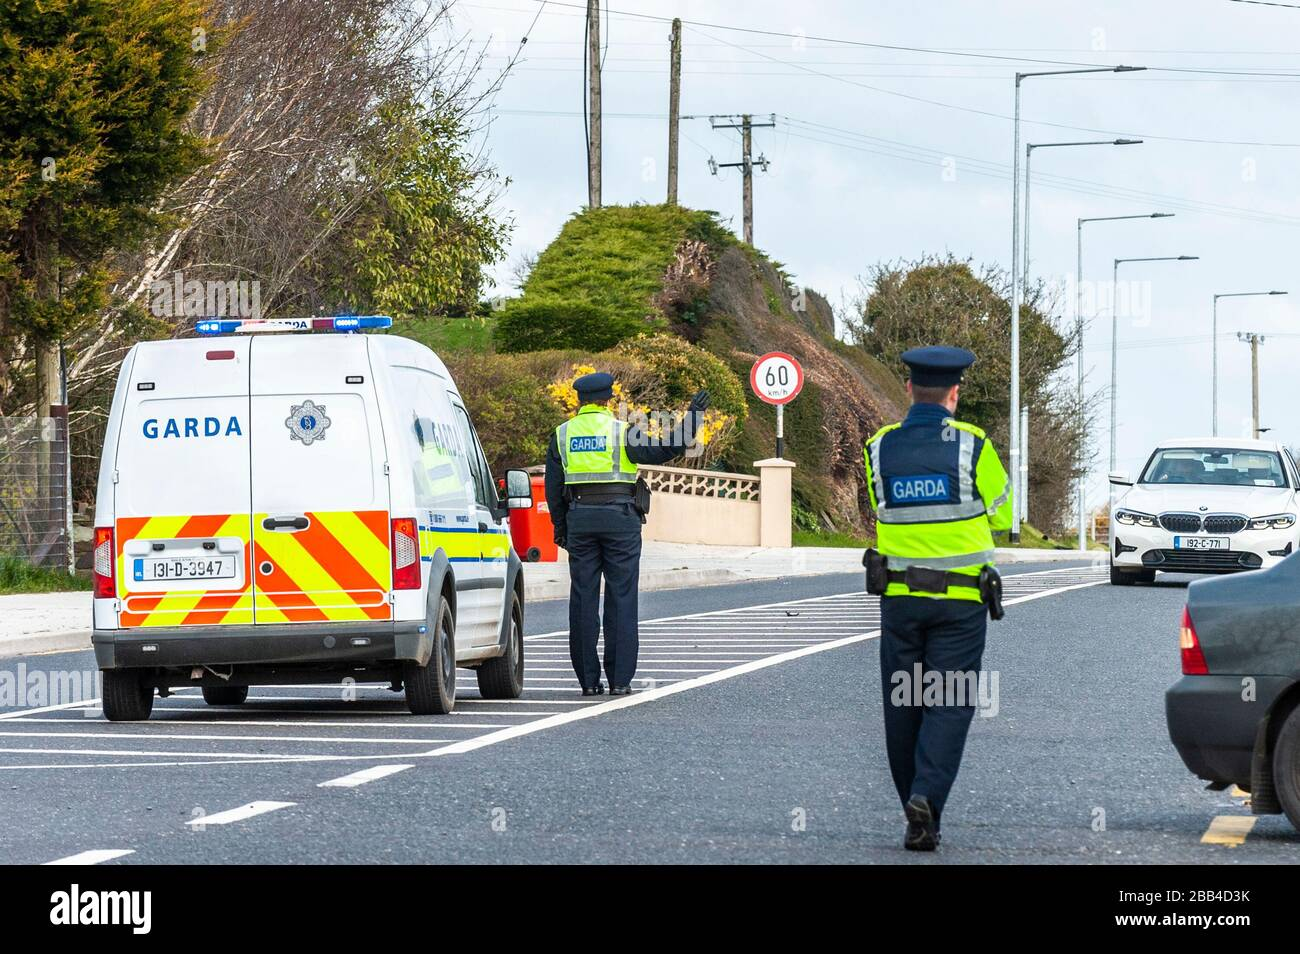 clonakilty-west-cork-ireland-30th-mar-2020-as-part-of-the-mandatory-stay-at-home-order-imposed-by-the-irish-government-on-friday-last-the-gardai-have-been-tasked-to-ensure-people-are-complying-to-help-stop-the-spread-of-covid-19-a-garda-checkpoint-was-in-place-on-the-clonakilty-to-bandon-road-this-afternoon-which-consisted-of-3-regular-gardai-and-2-armed-gardai-credit-andy-gibsonalamy-live-news-2BB4D3K.jpg